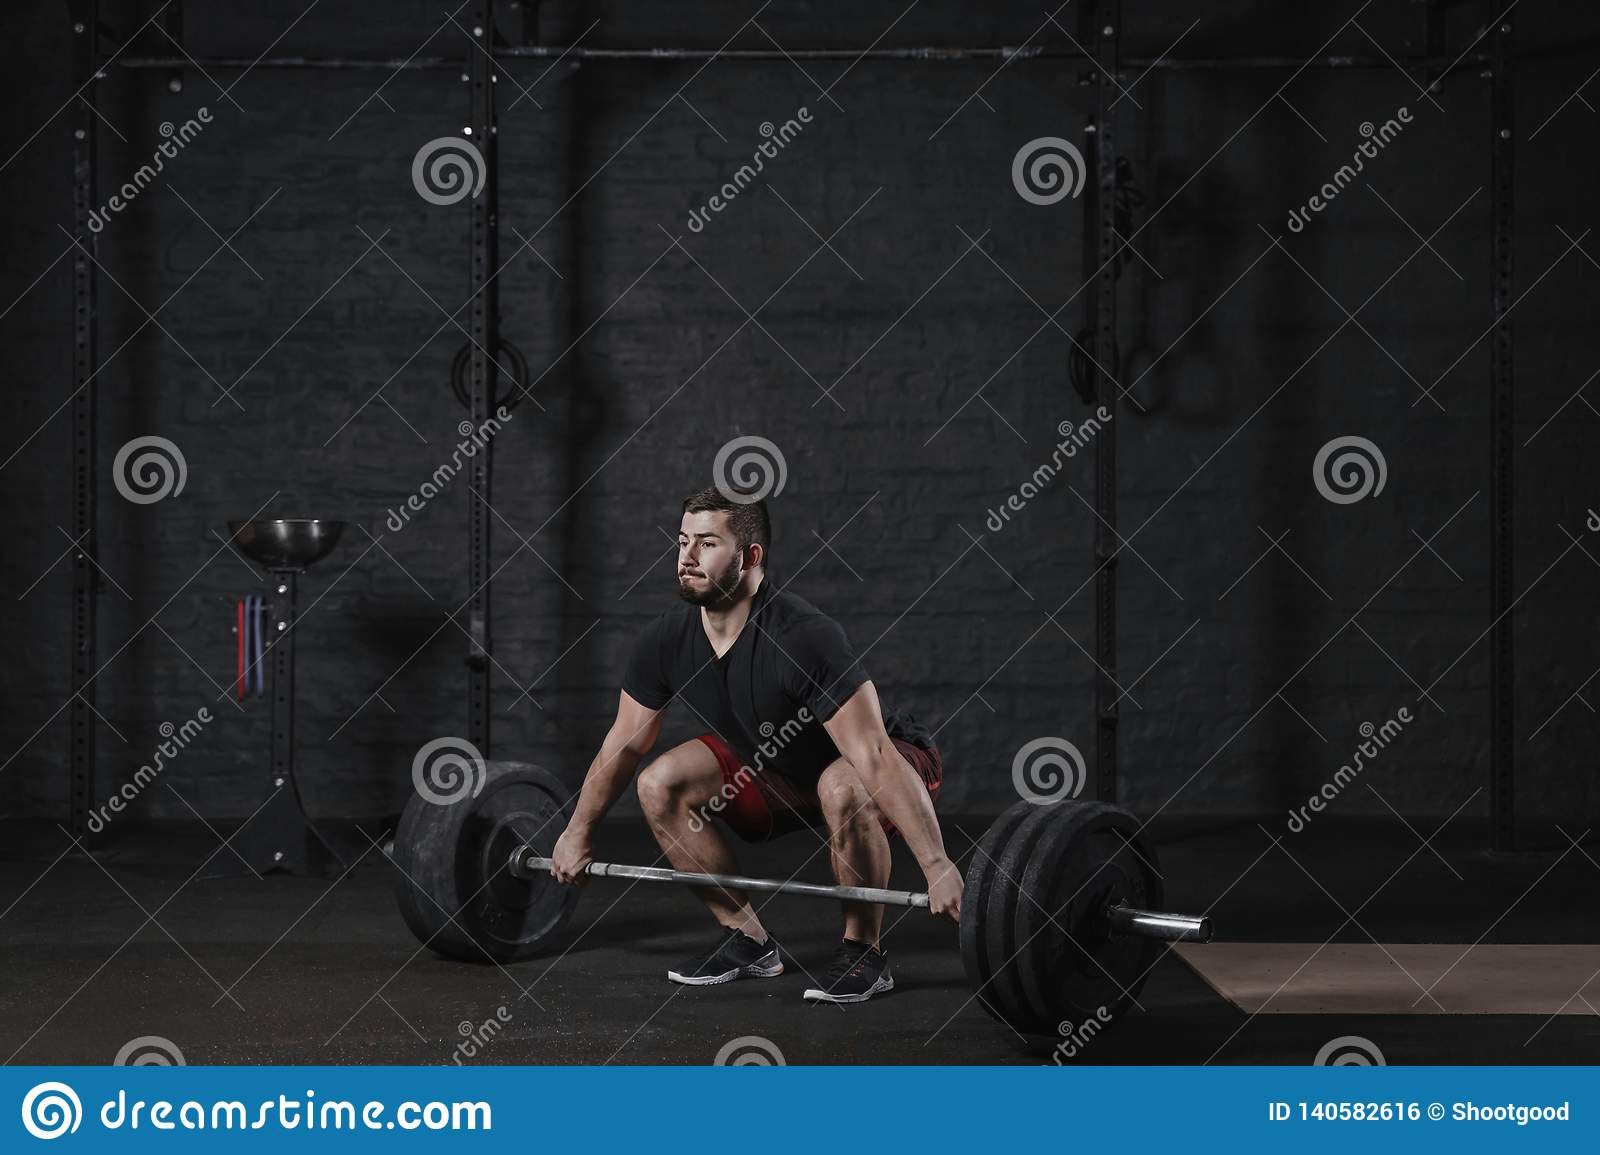 Young crossfit athlete doing deadlift exercise with heavy barbell at gym. Man practicing functional training powerlifting workout